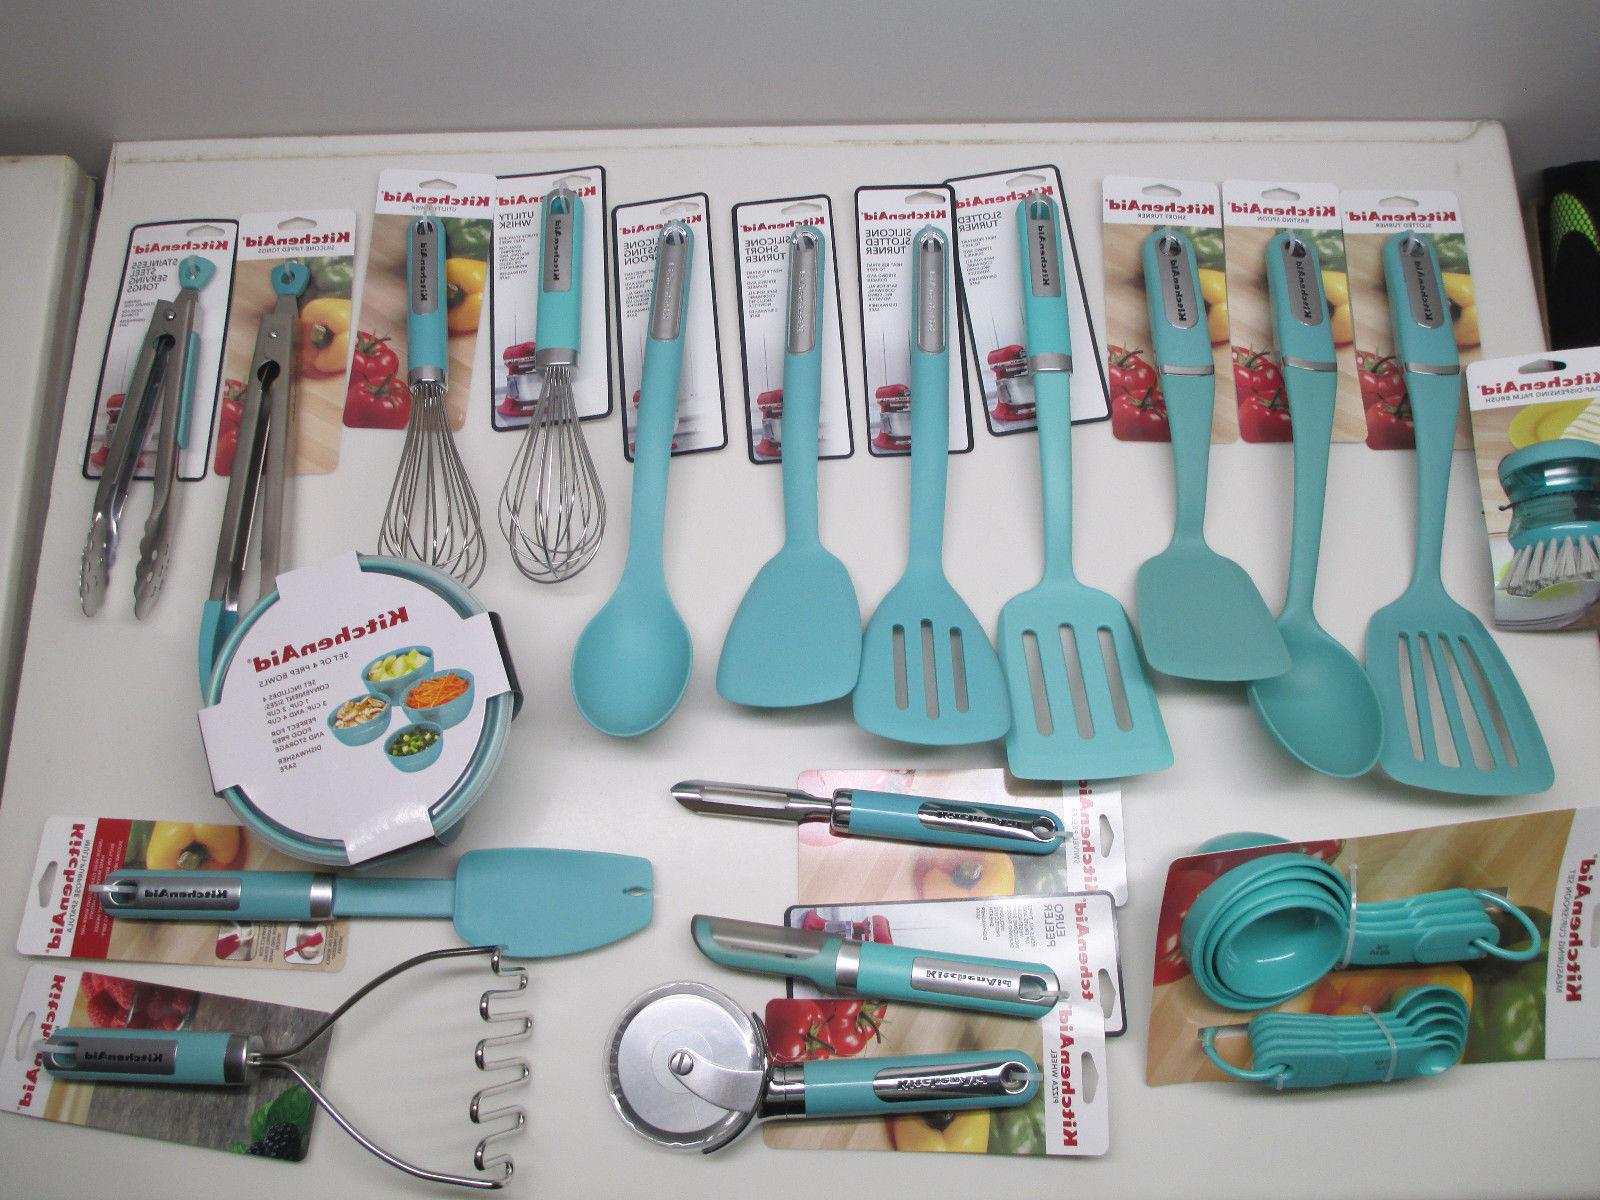 KitchenAid kitchen utensils and towels in aqua sky